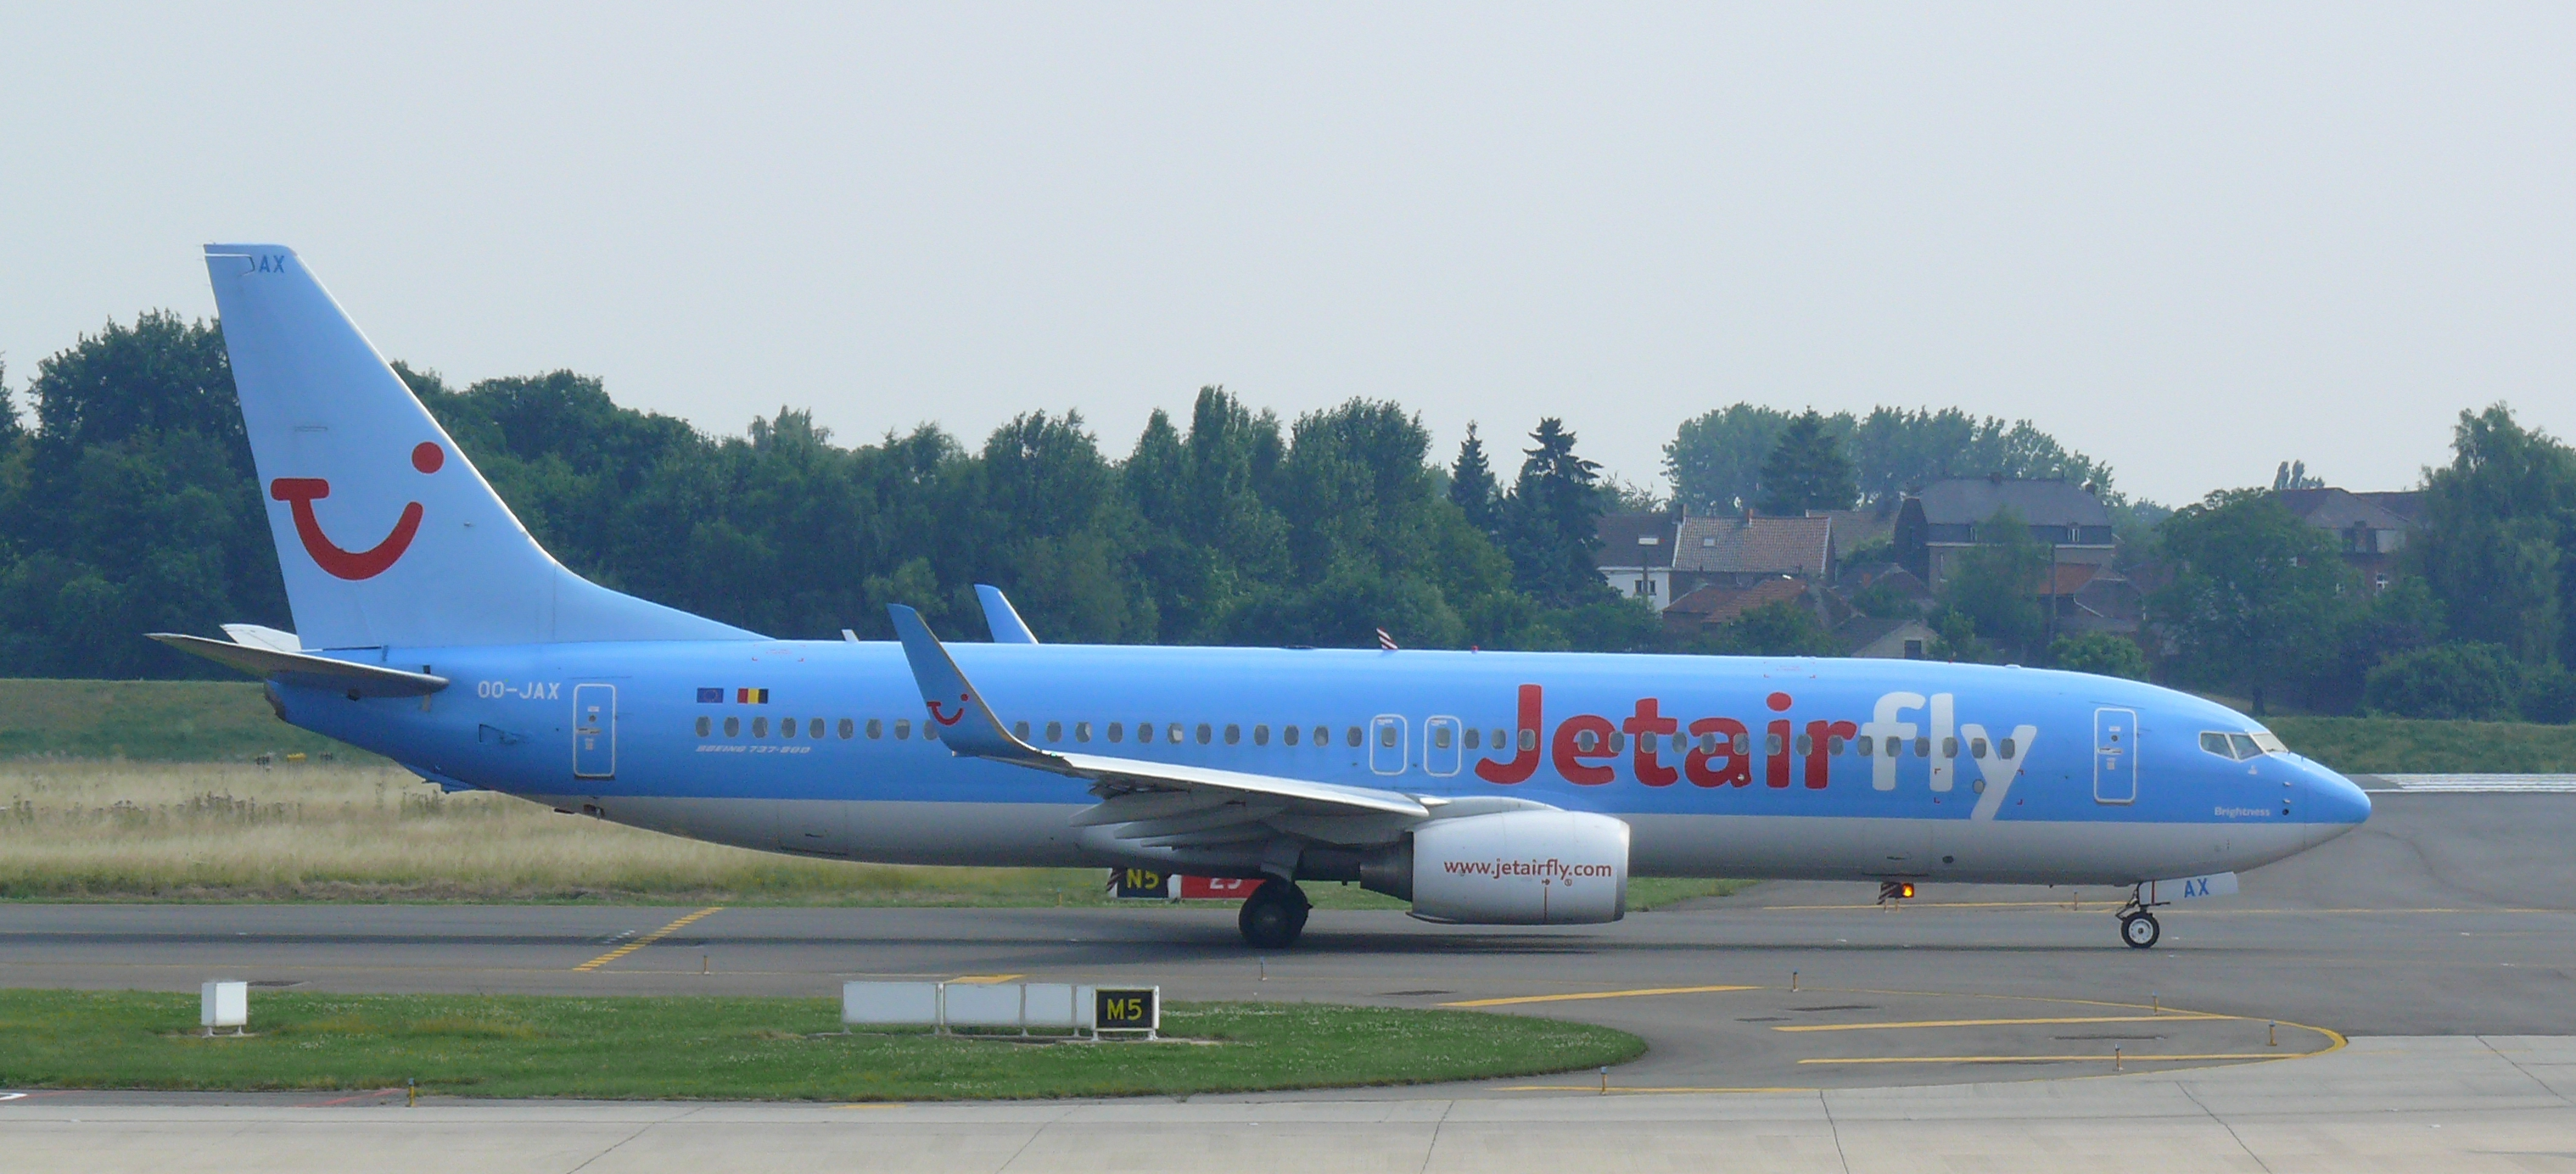 The airline Jet Air (Jet Air) .2